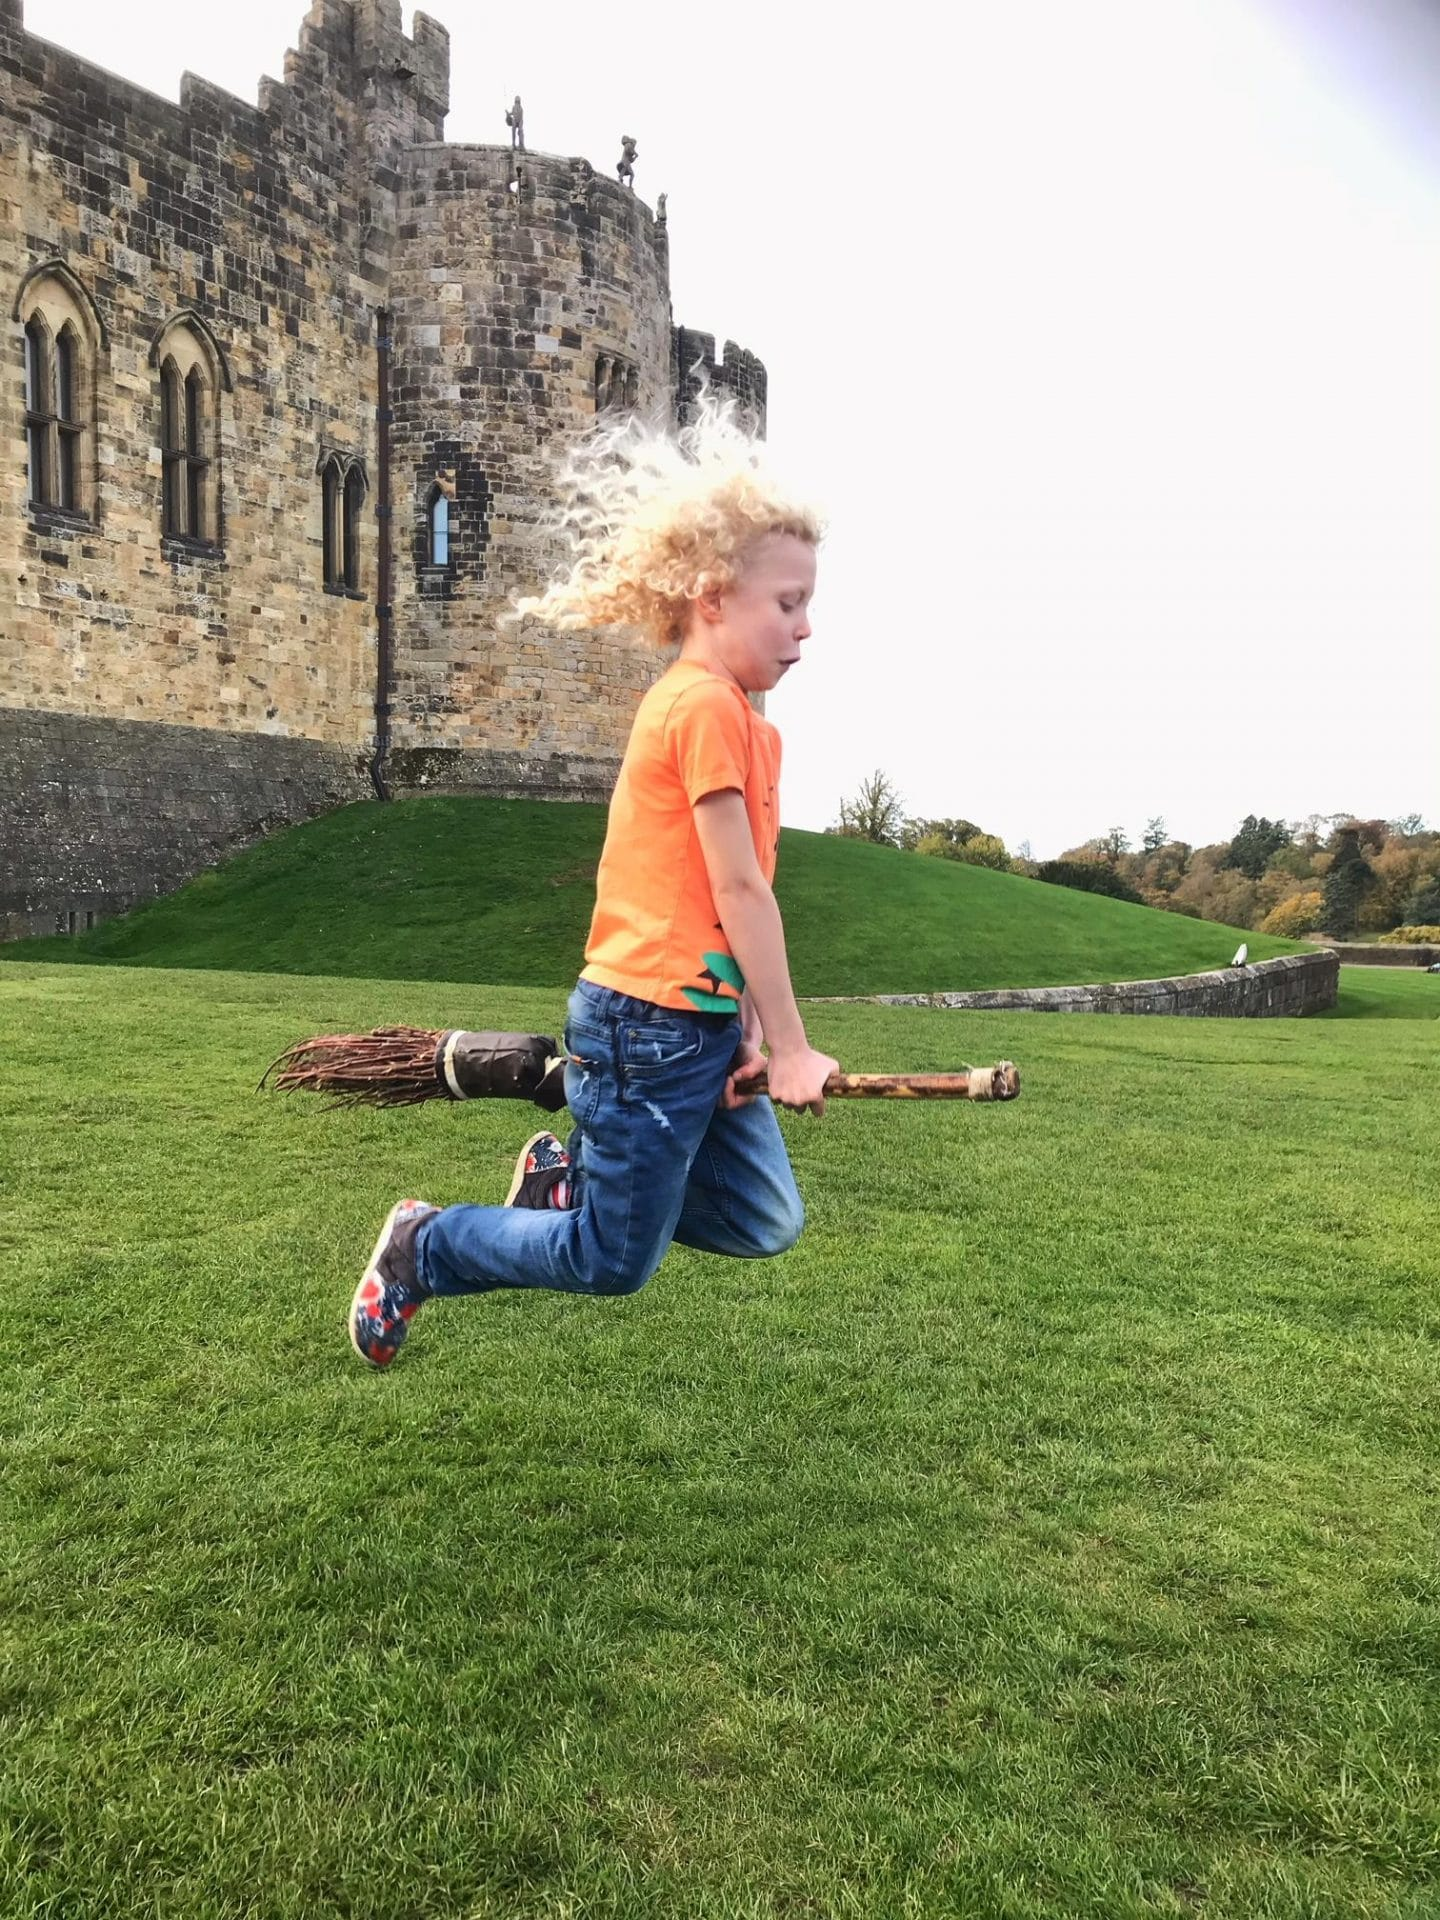 flying a broomstick